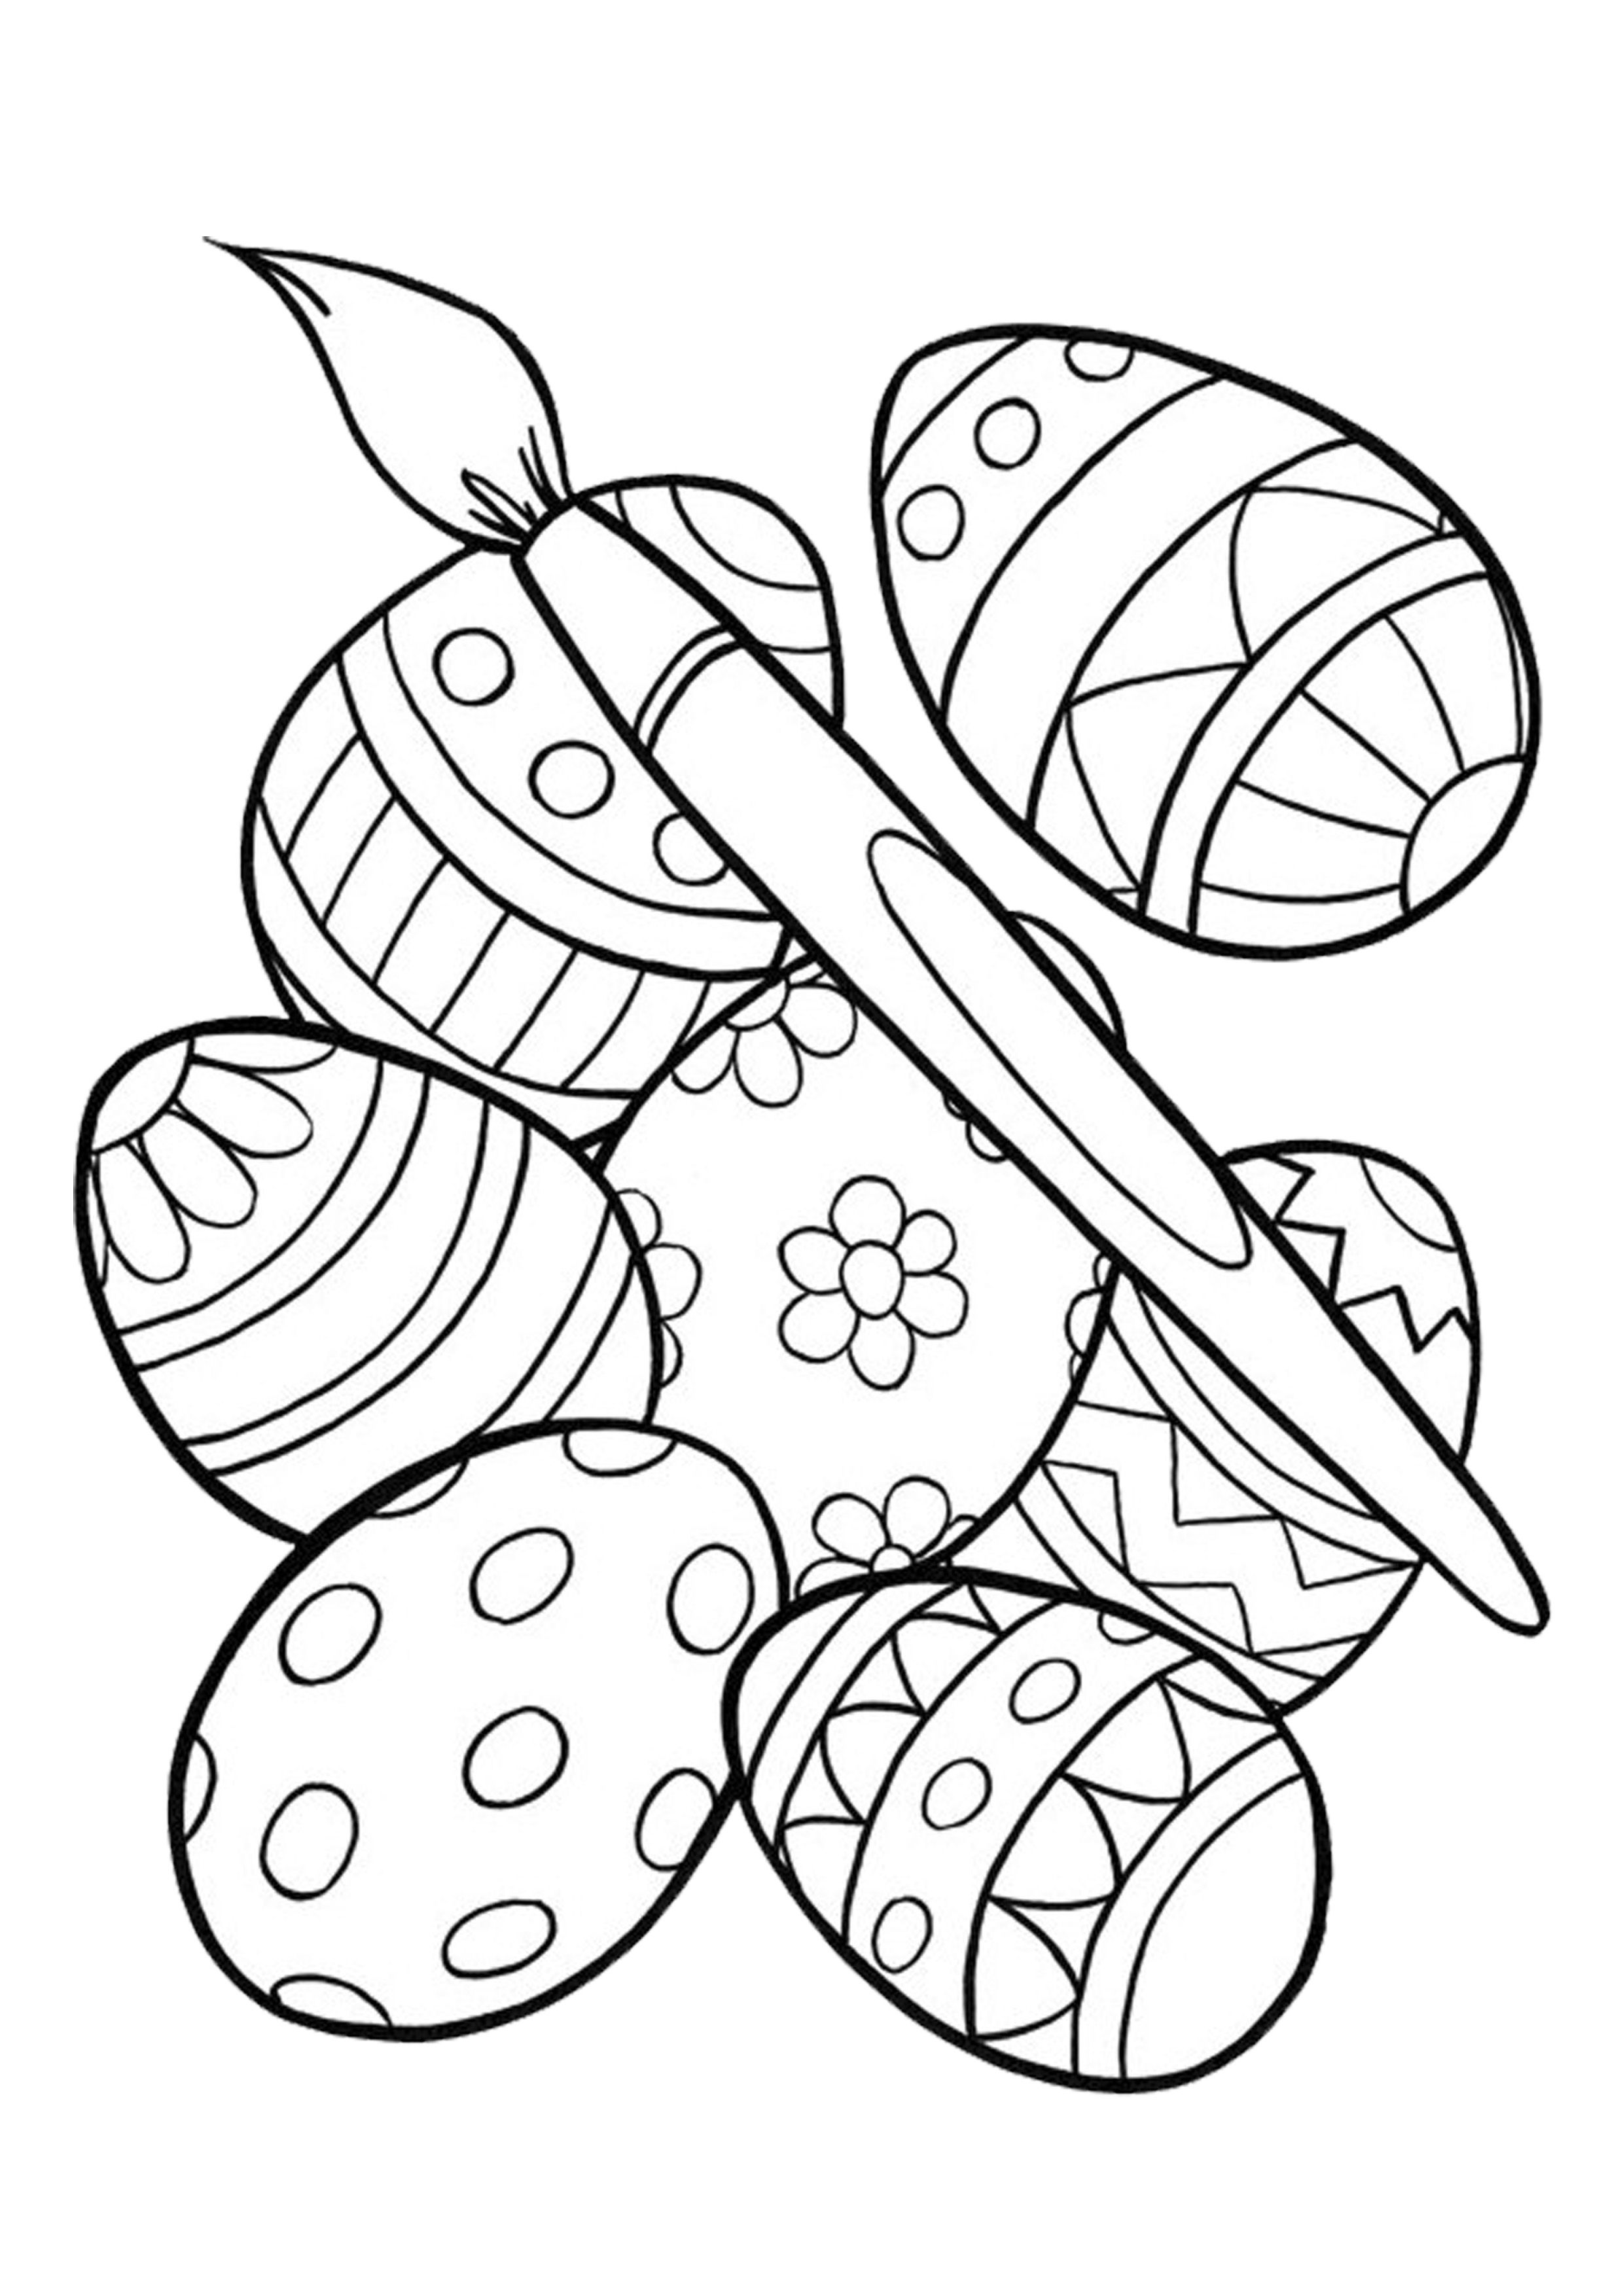 printable easter coloring pages for toddlers free printable easter coloring pages easter freebies for toddlers easter coloring pages printable